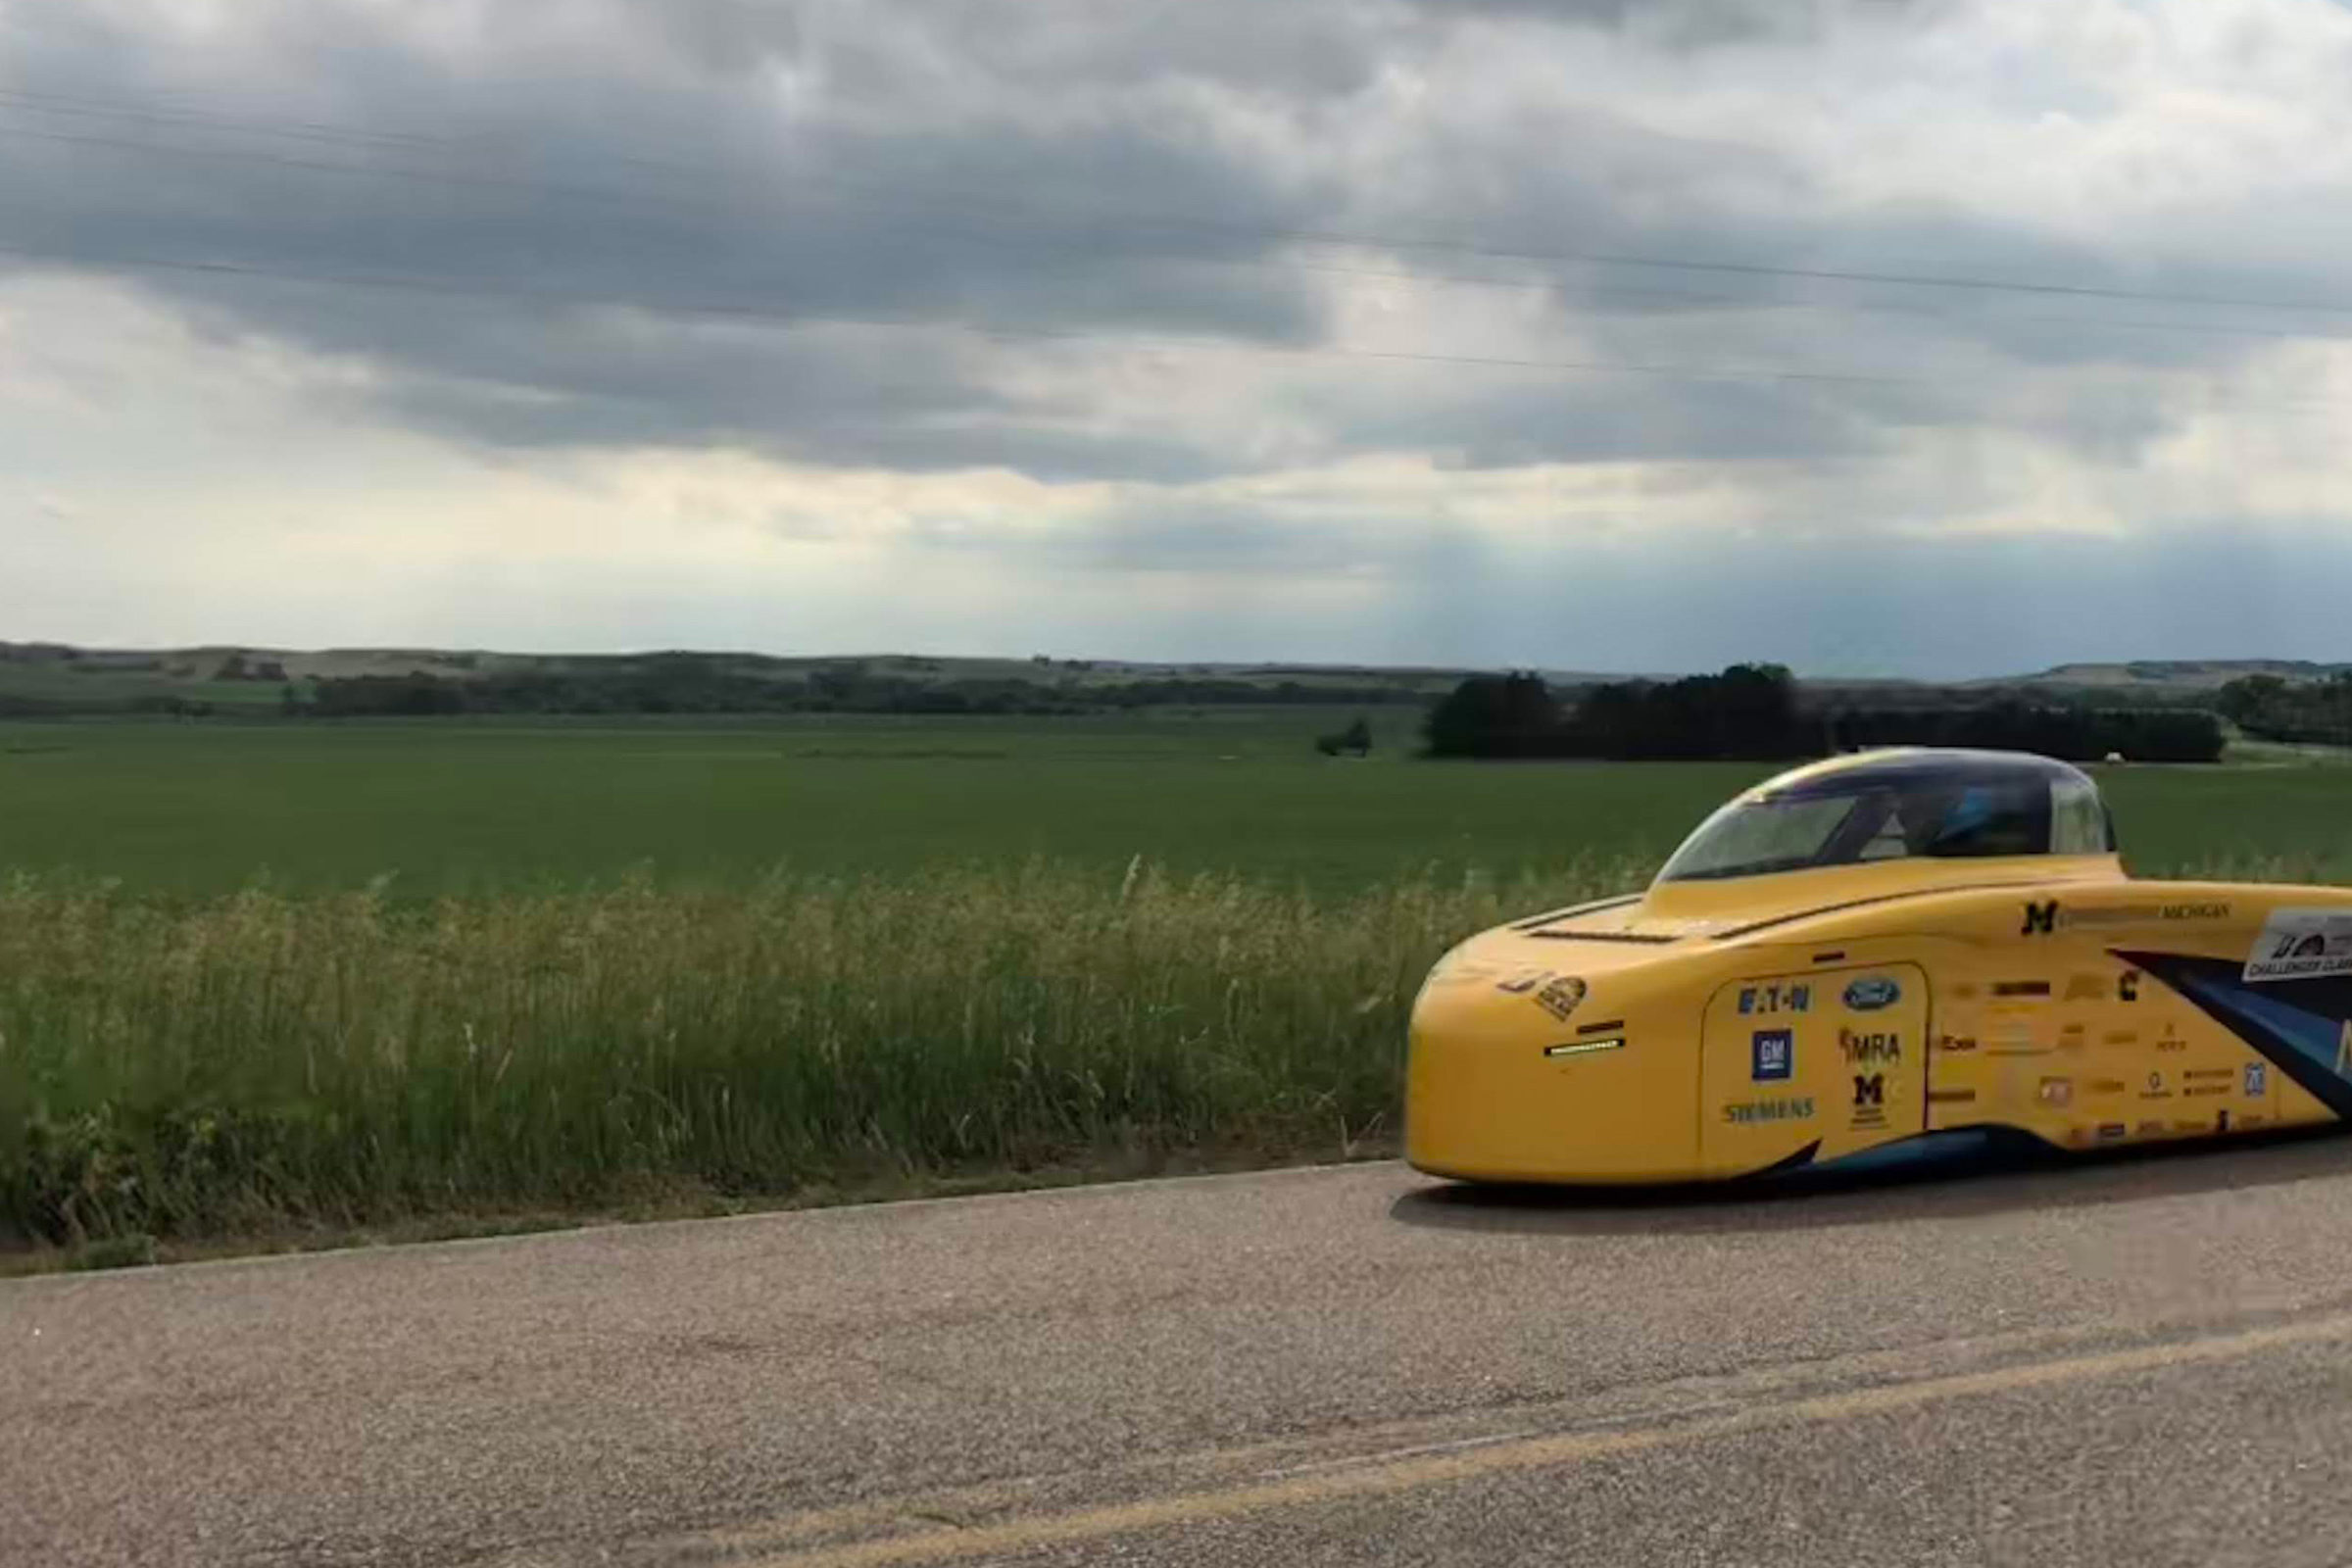 The University of Michigan solar car Novum contends with clouds during a practice run on the American Solar Challenge race route